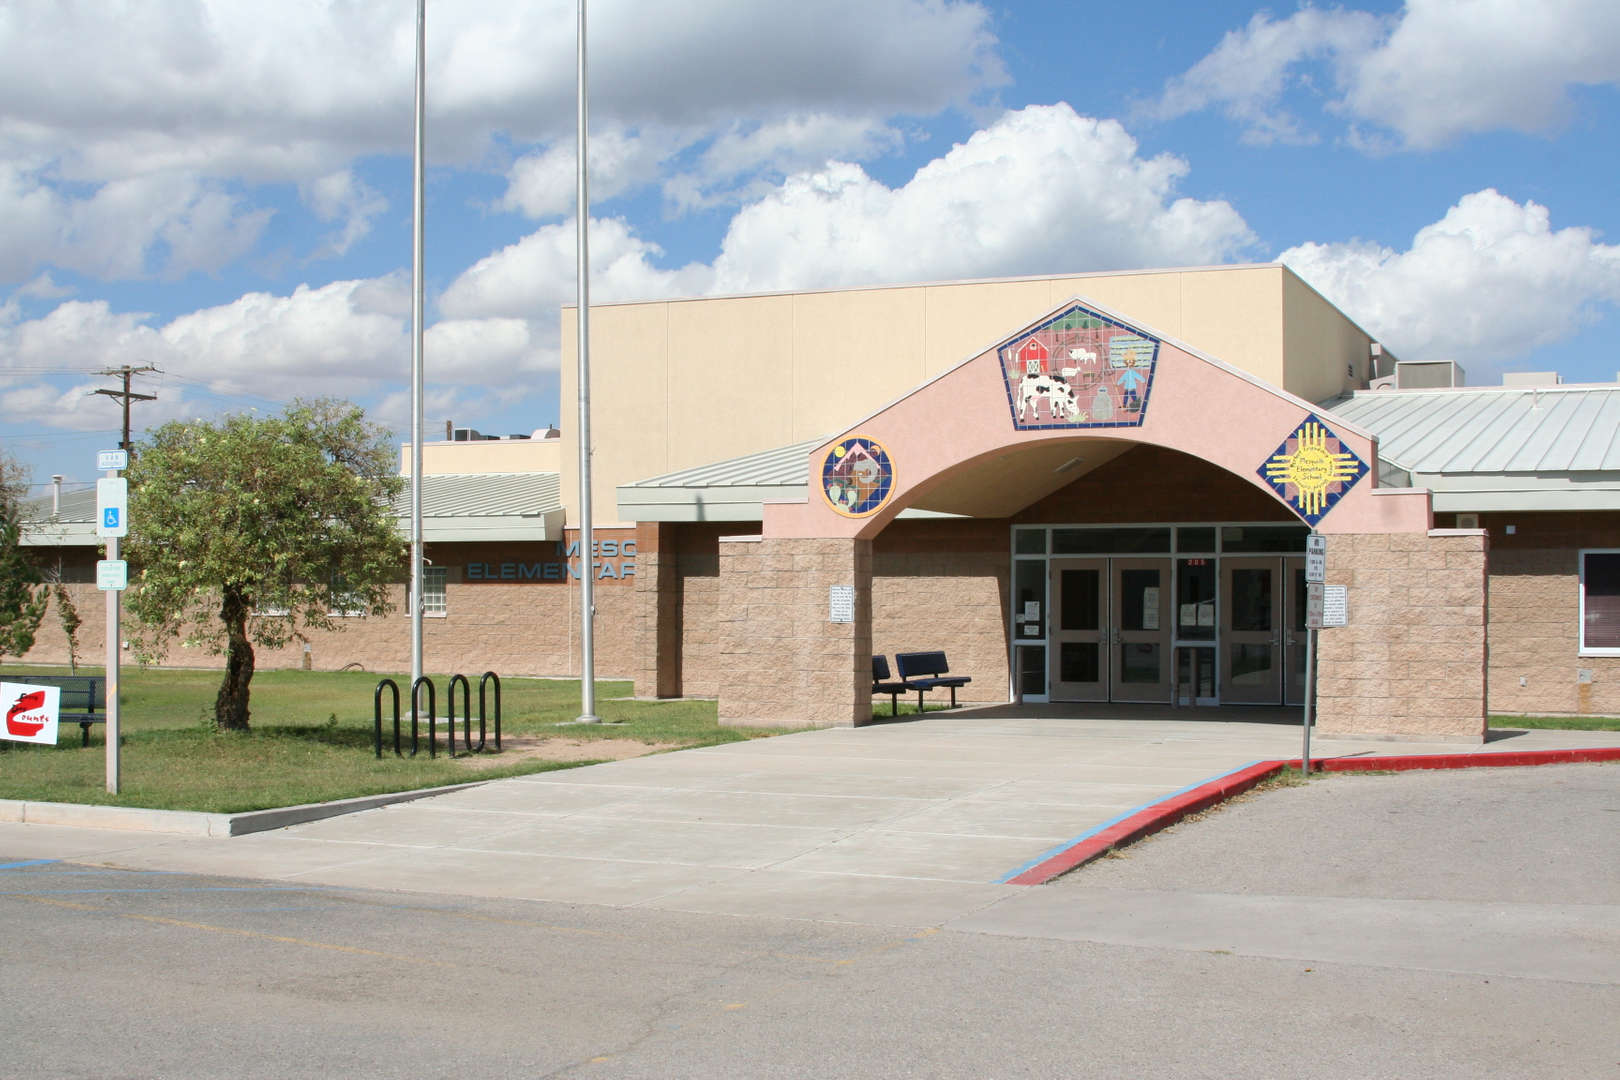 Mesquite Elementary School front fascade